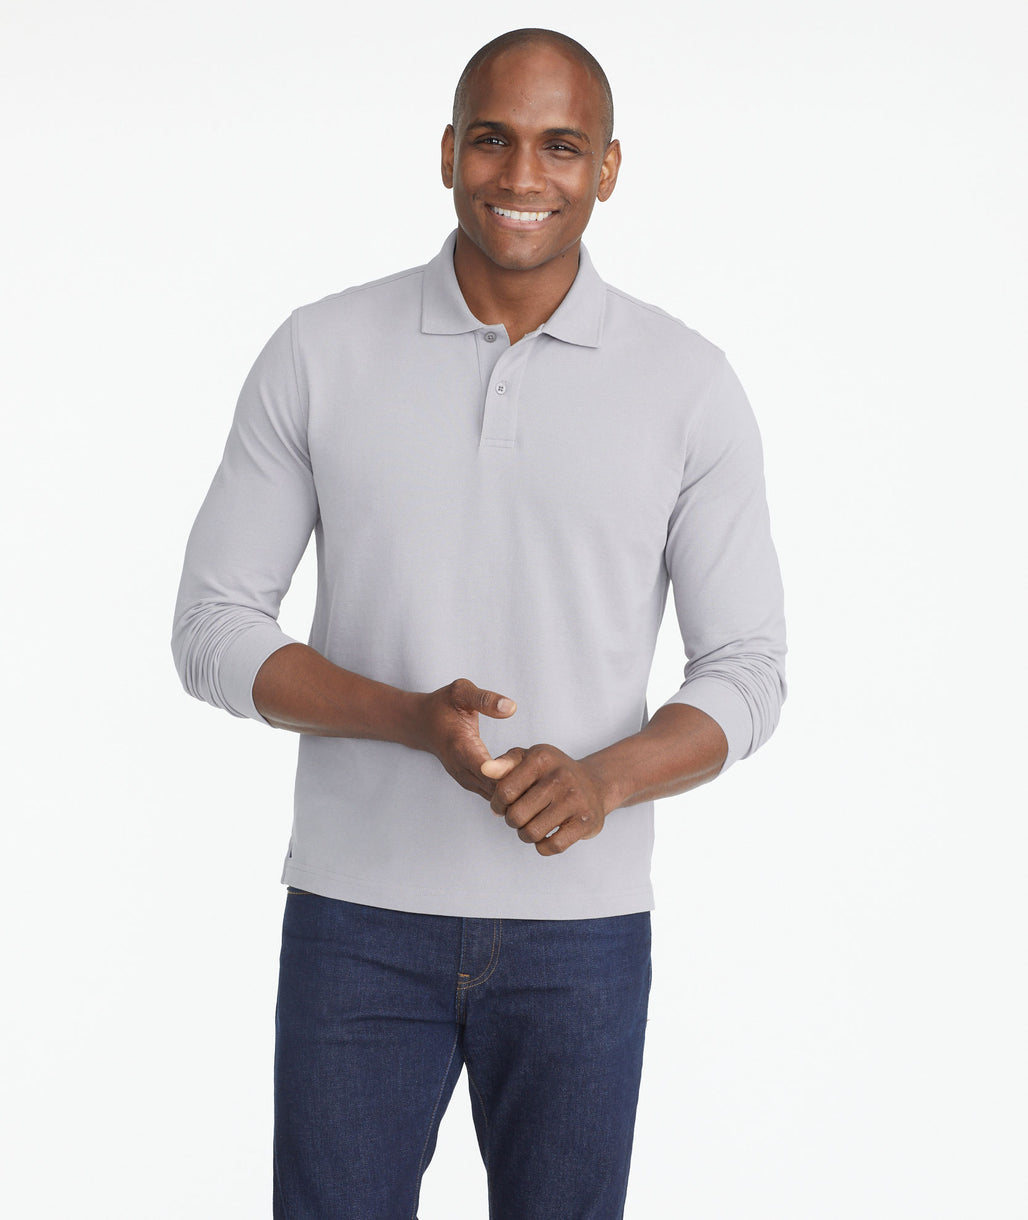 Model wearing a Grey Classic Long-Sleeve Polo